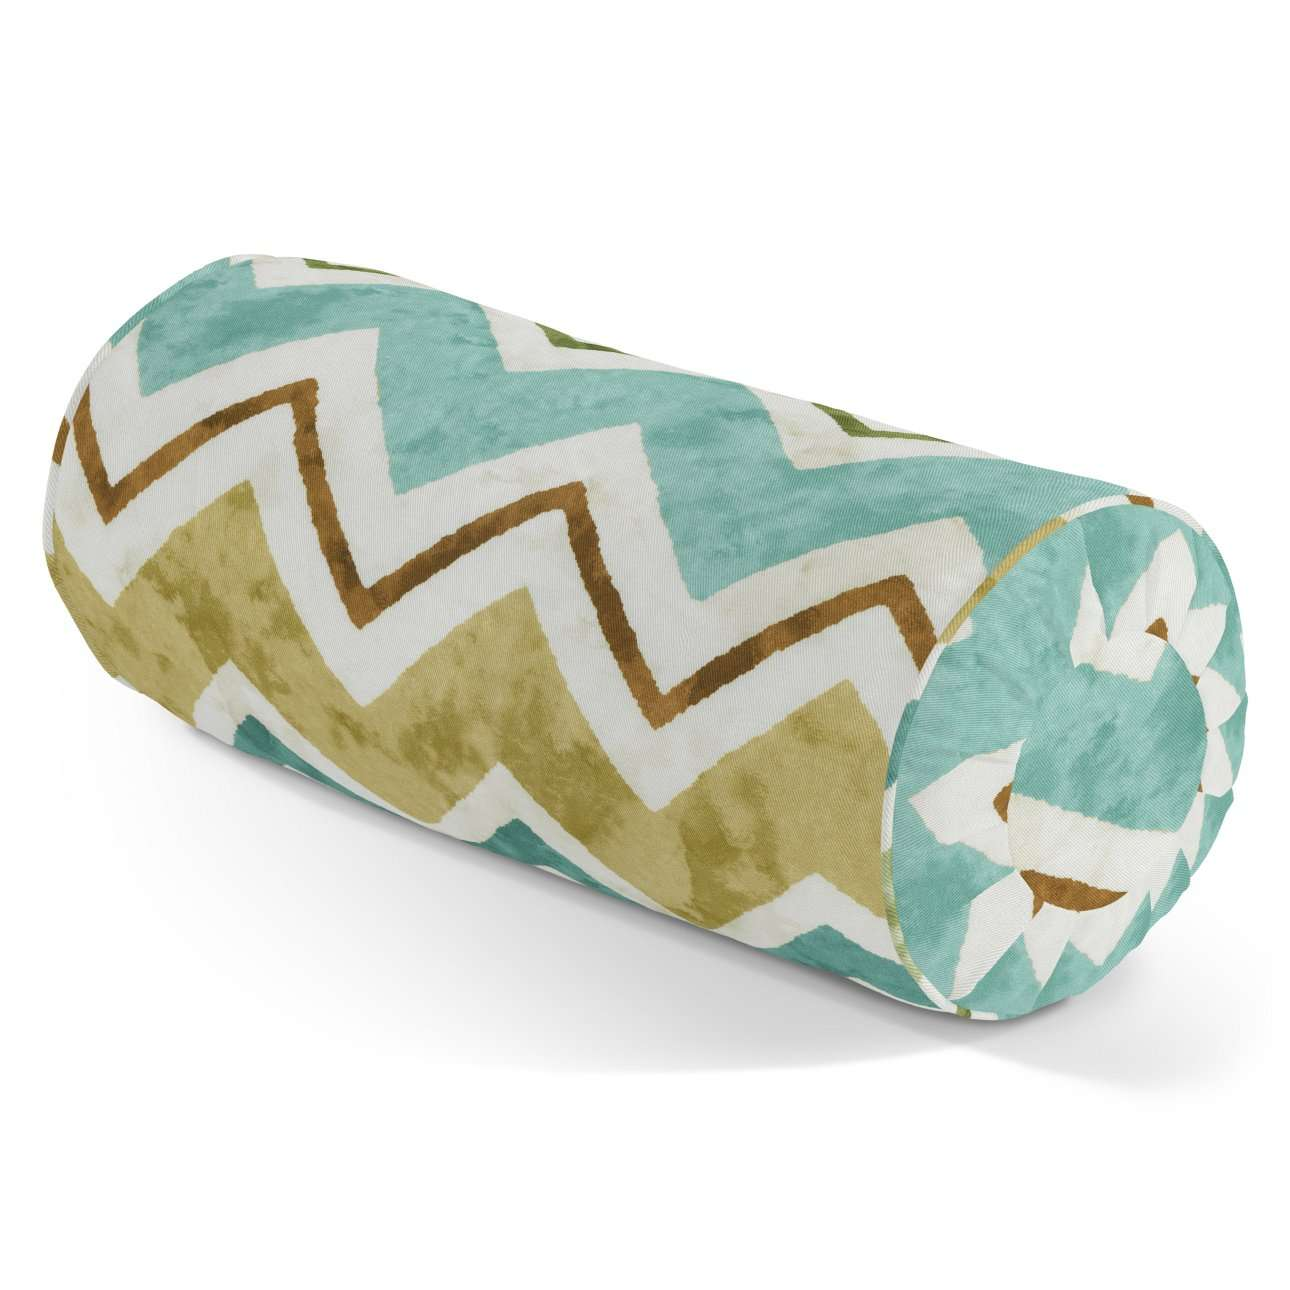 Bolster cushion with pleats in collection Acapulco, fabric: 141-41